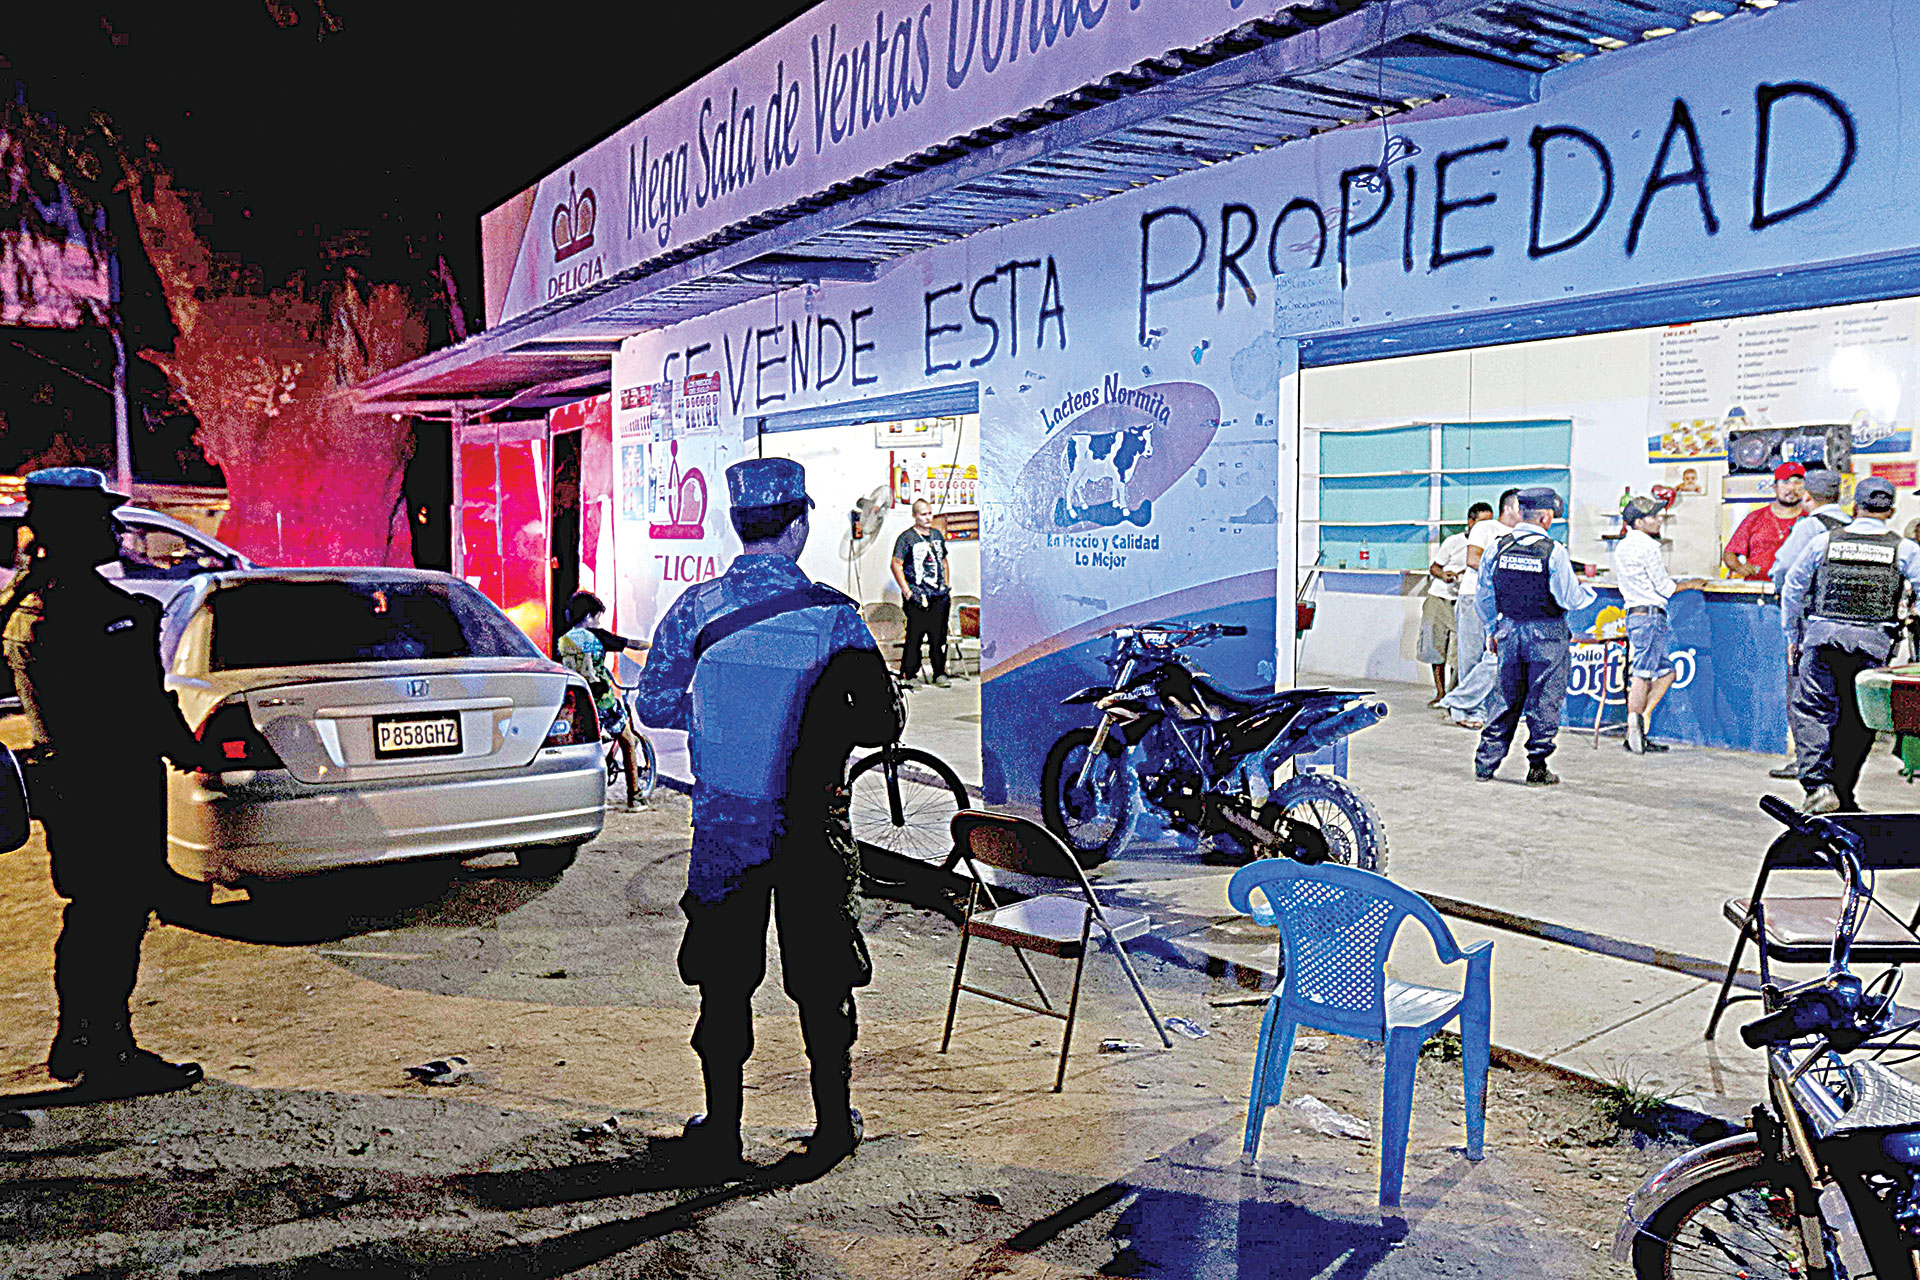 Policía interviniendo un local en San Pedro Sula